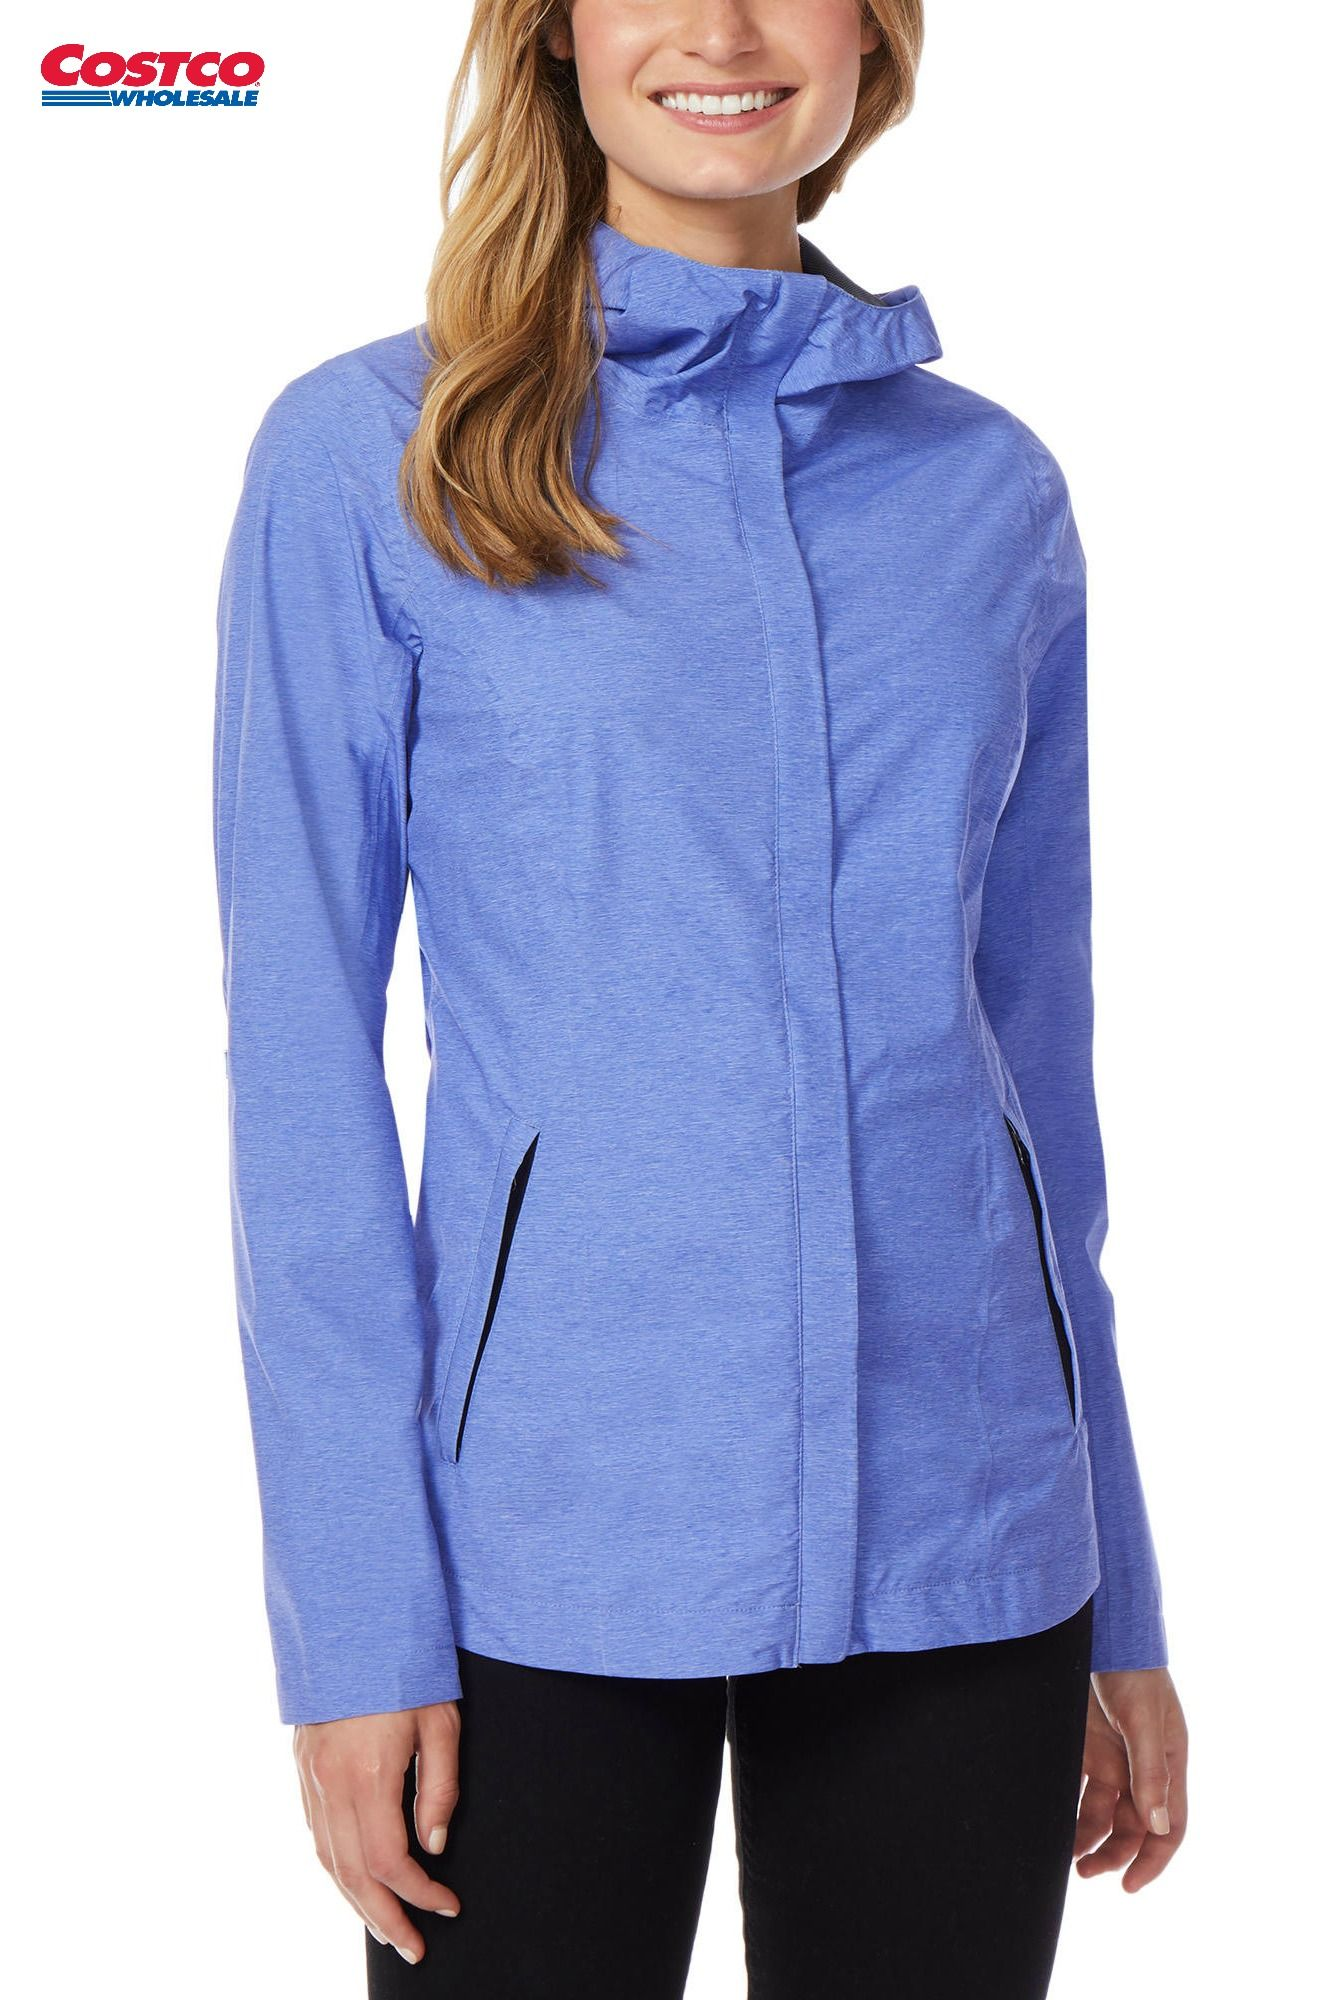 Degrees Ladies' Rain Jacket Costco Fashion Packable